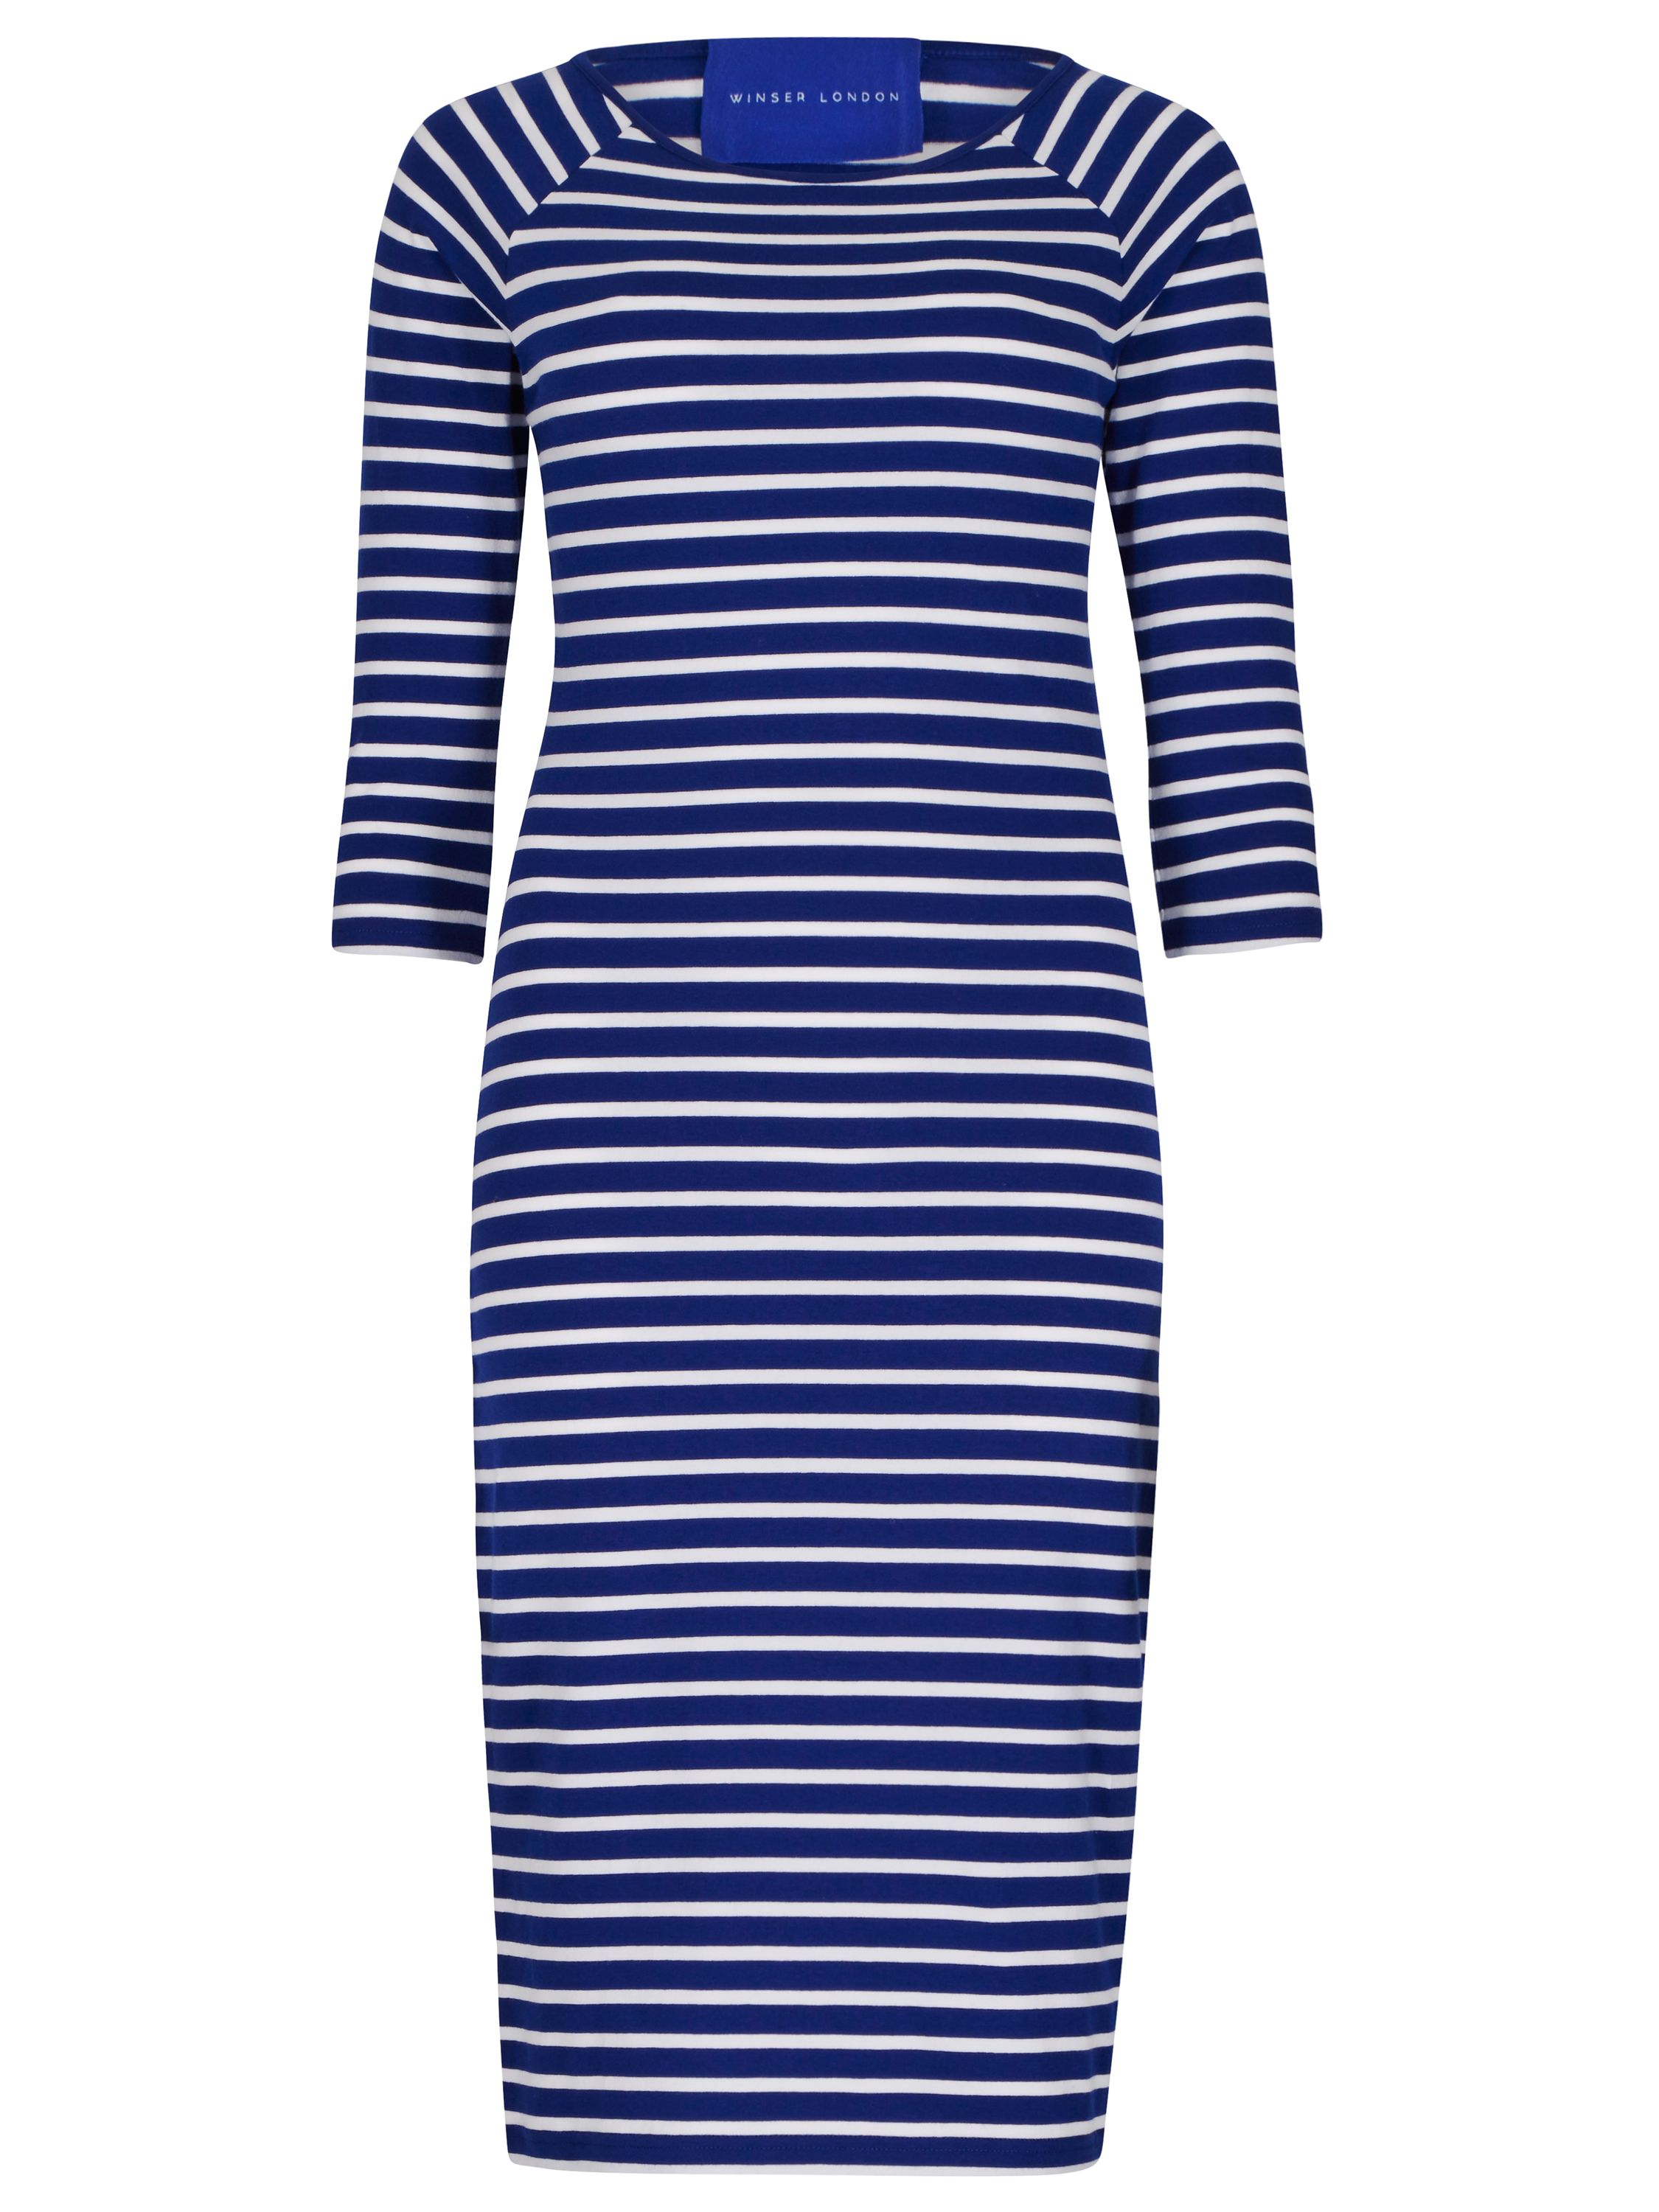 Winser London Cotton Jersey Striped Dress, Multi-Coloured